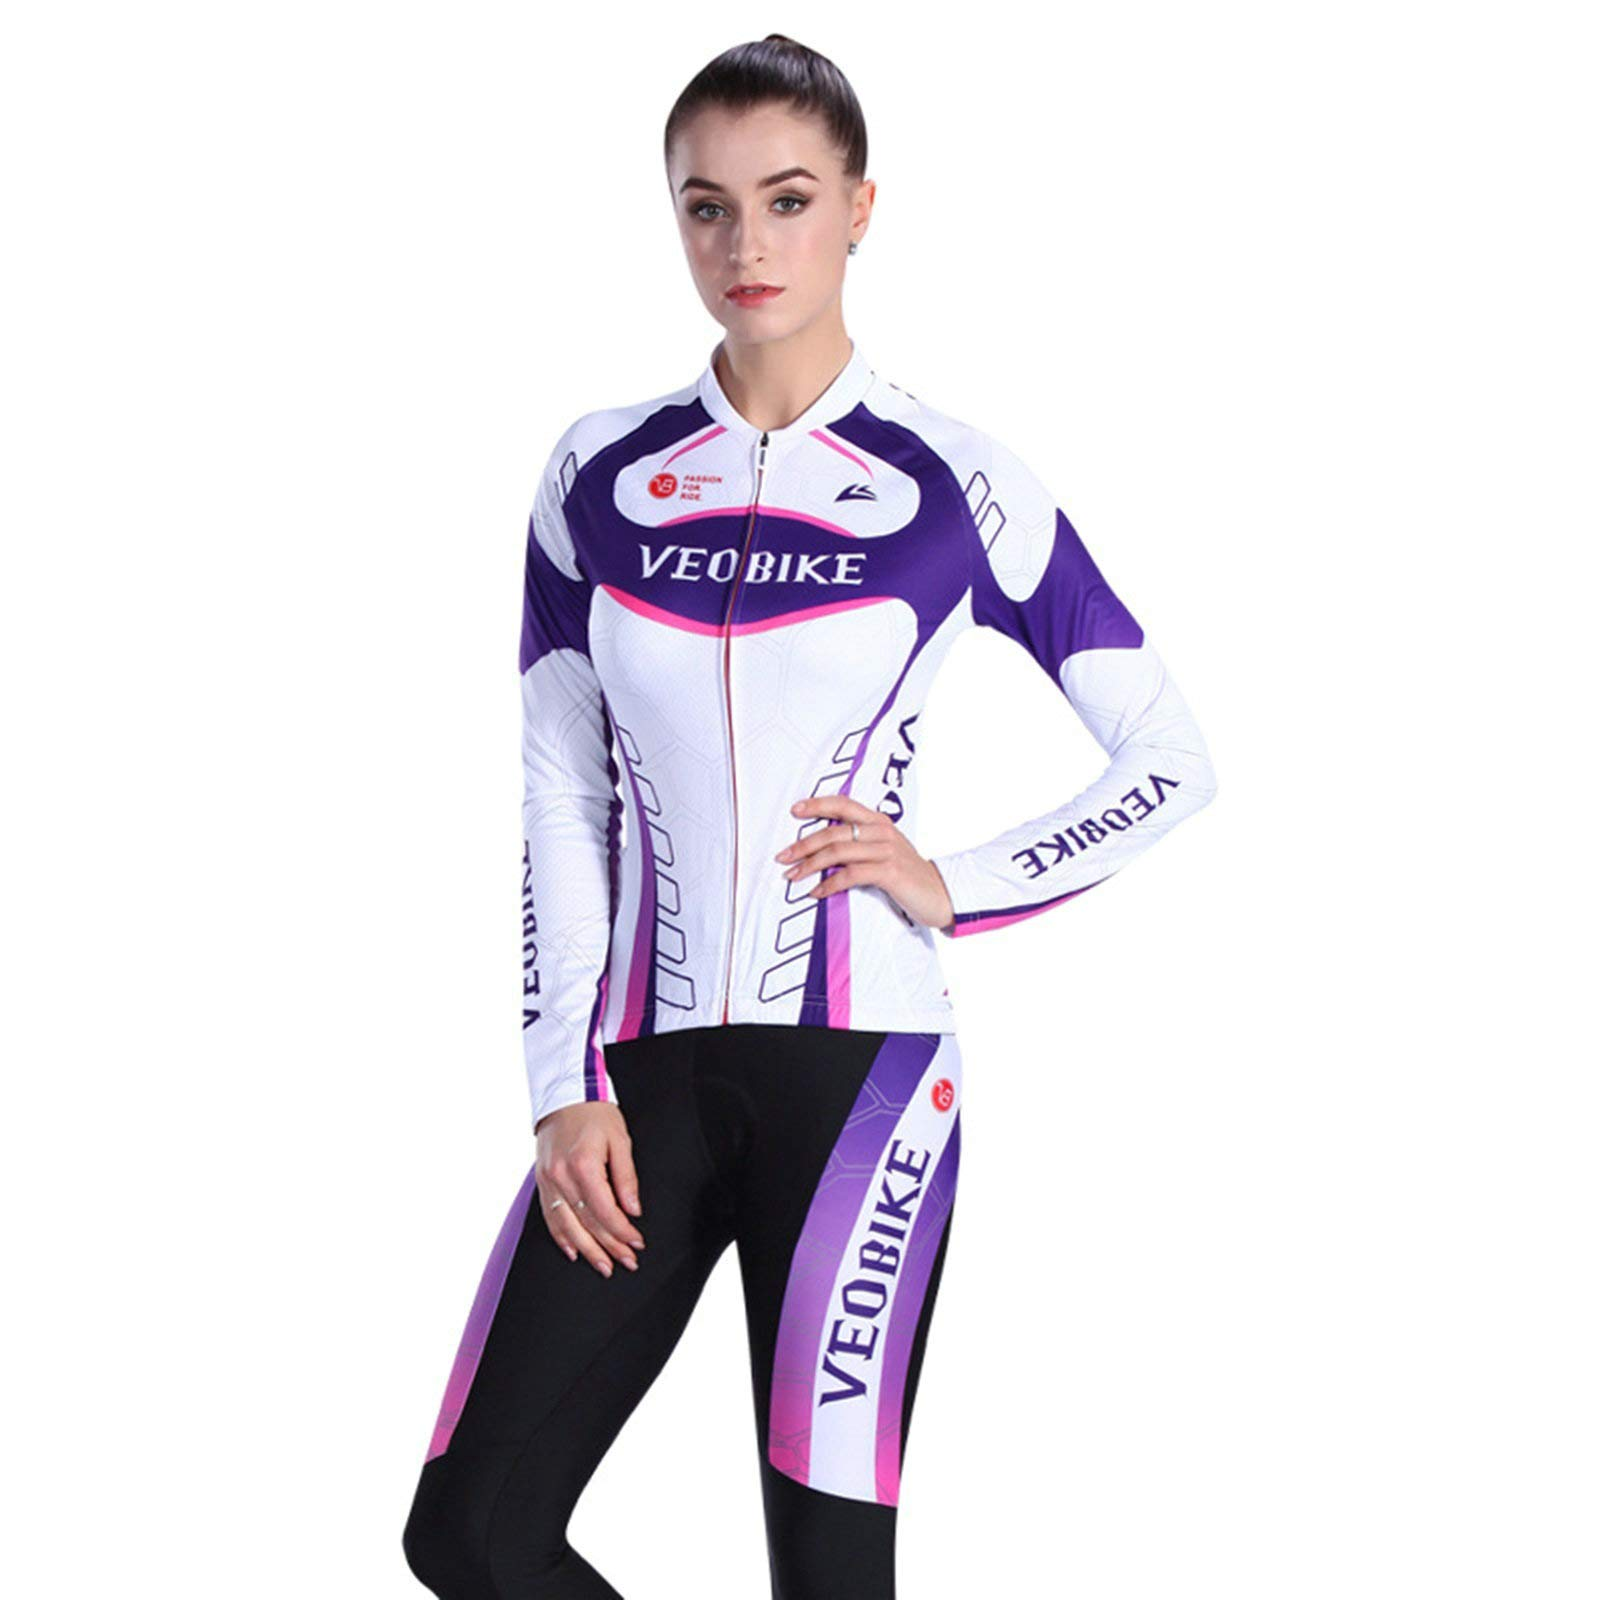 Aooaz Women Sports Clothes Pants Set Purple White Size S by Aooaz (Image #1)